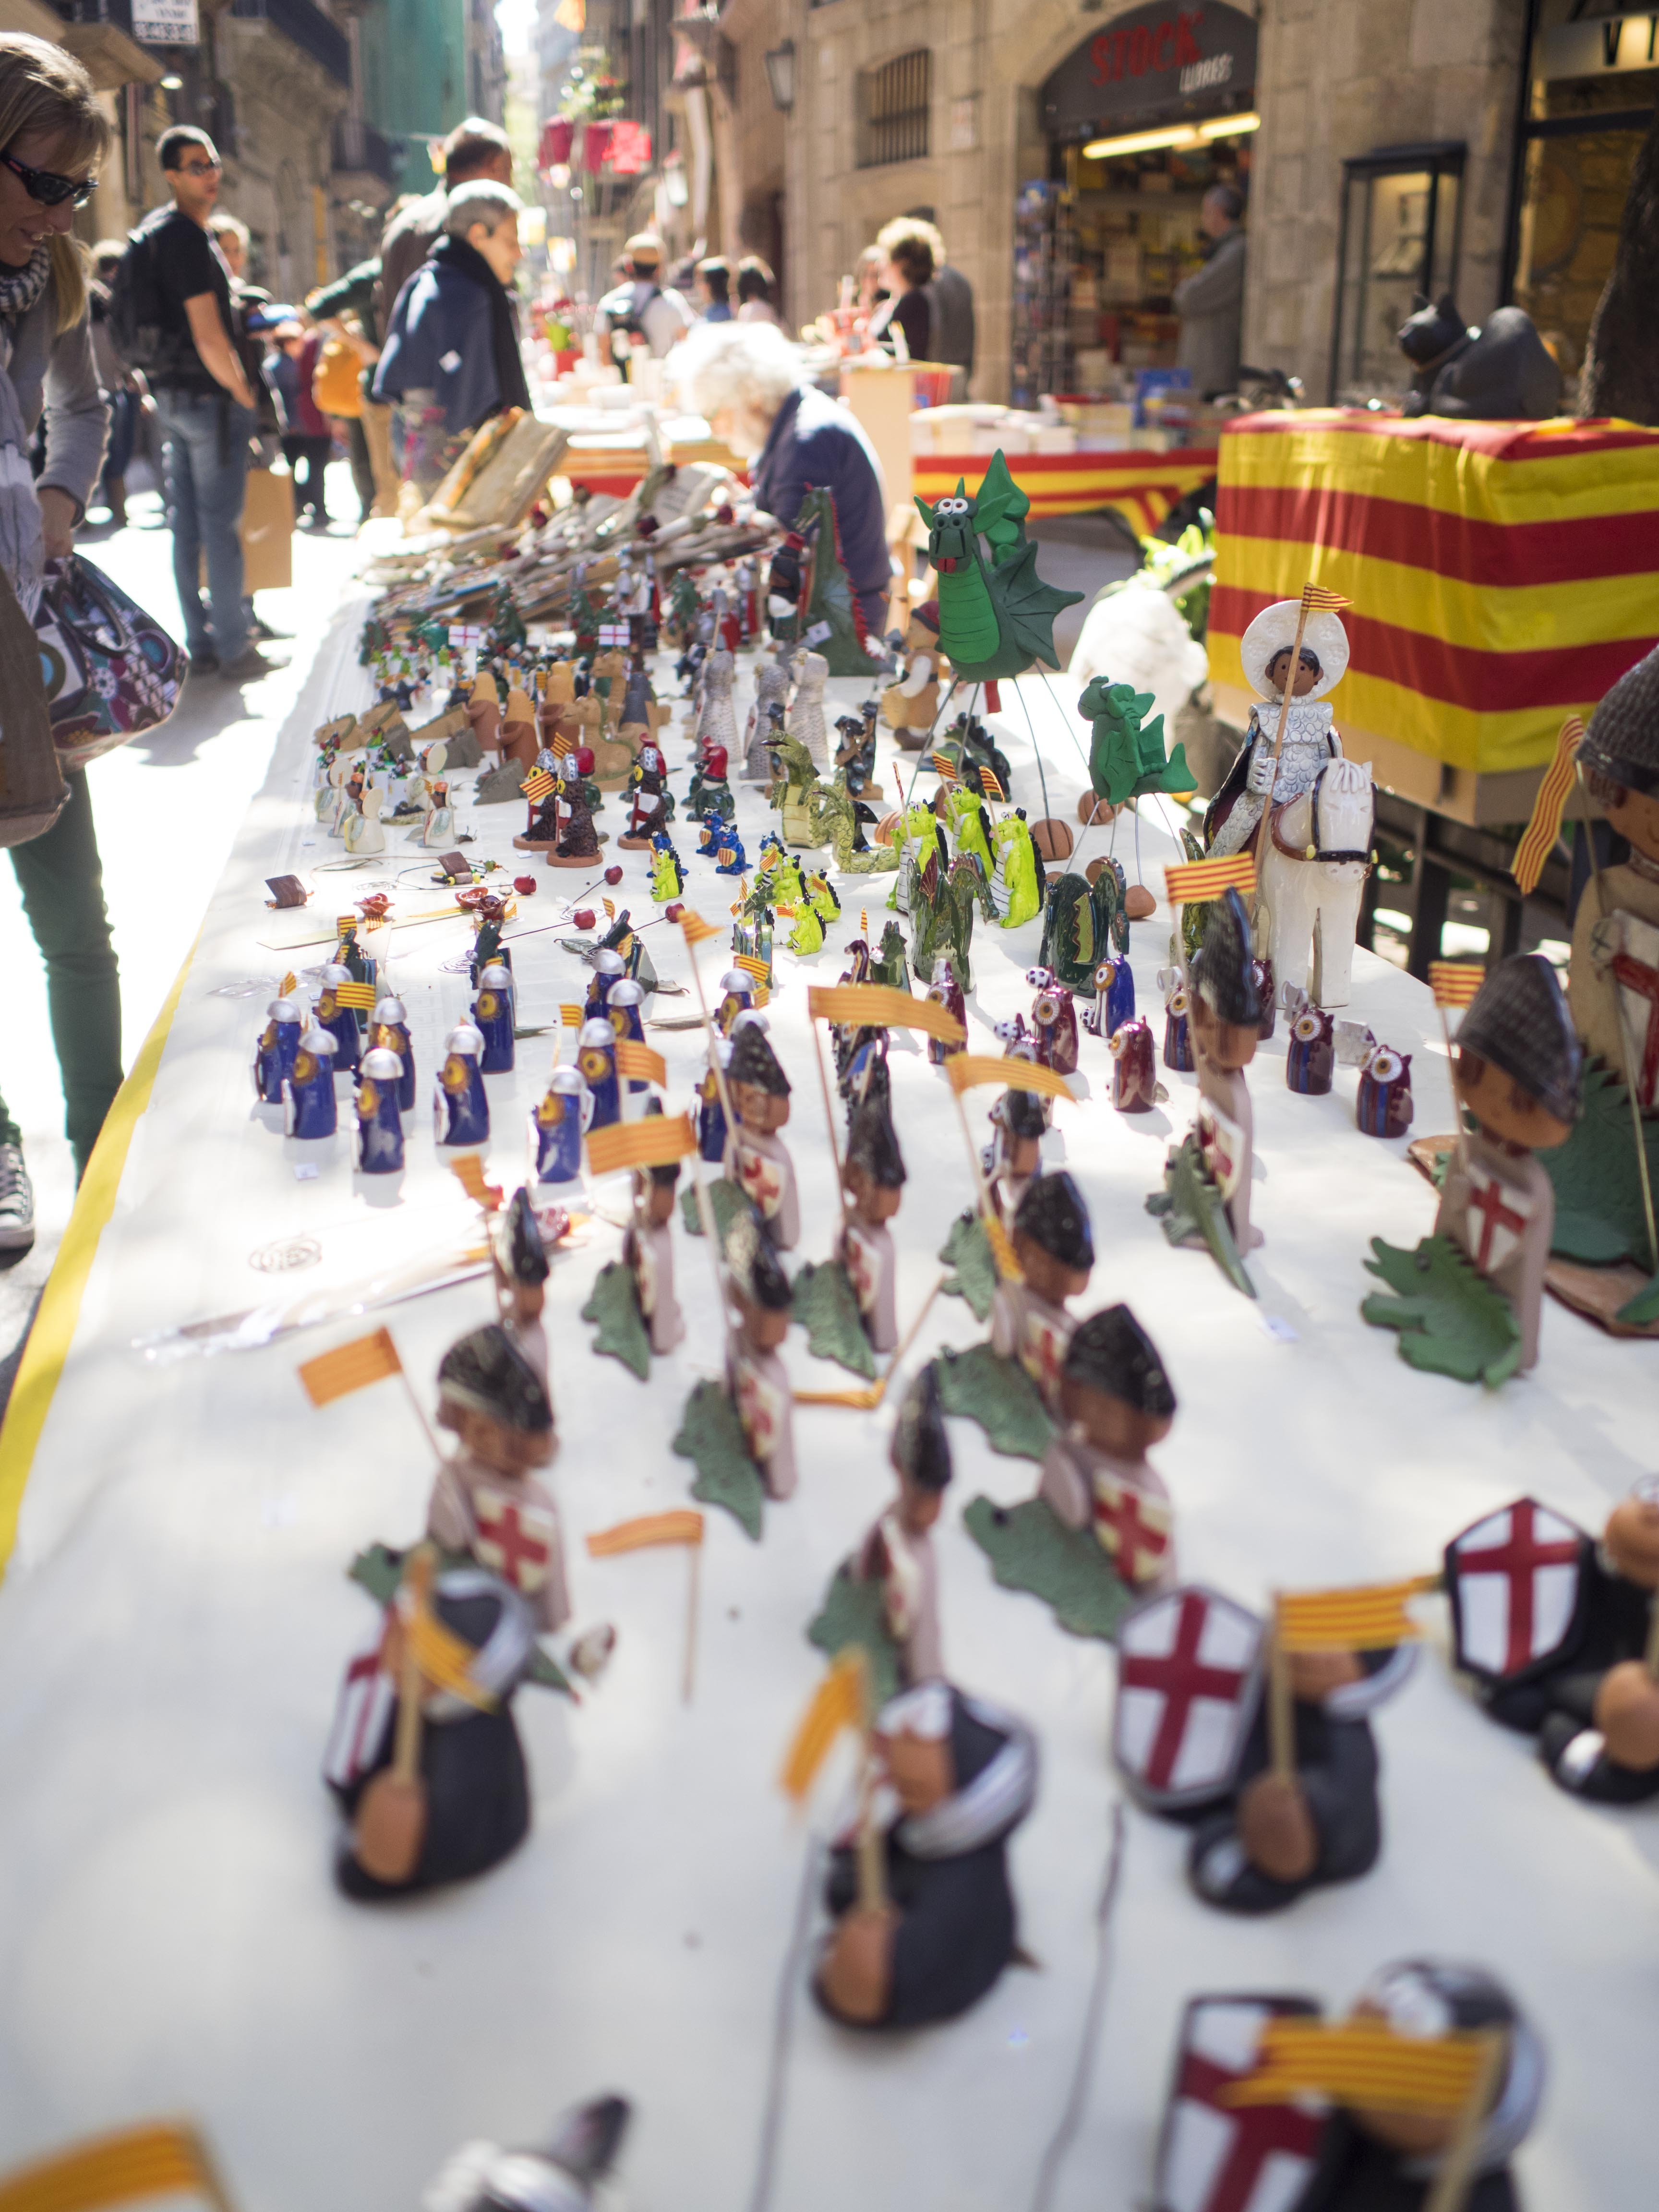 A table of figurines on St. Jordi's Day